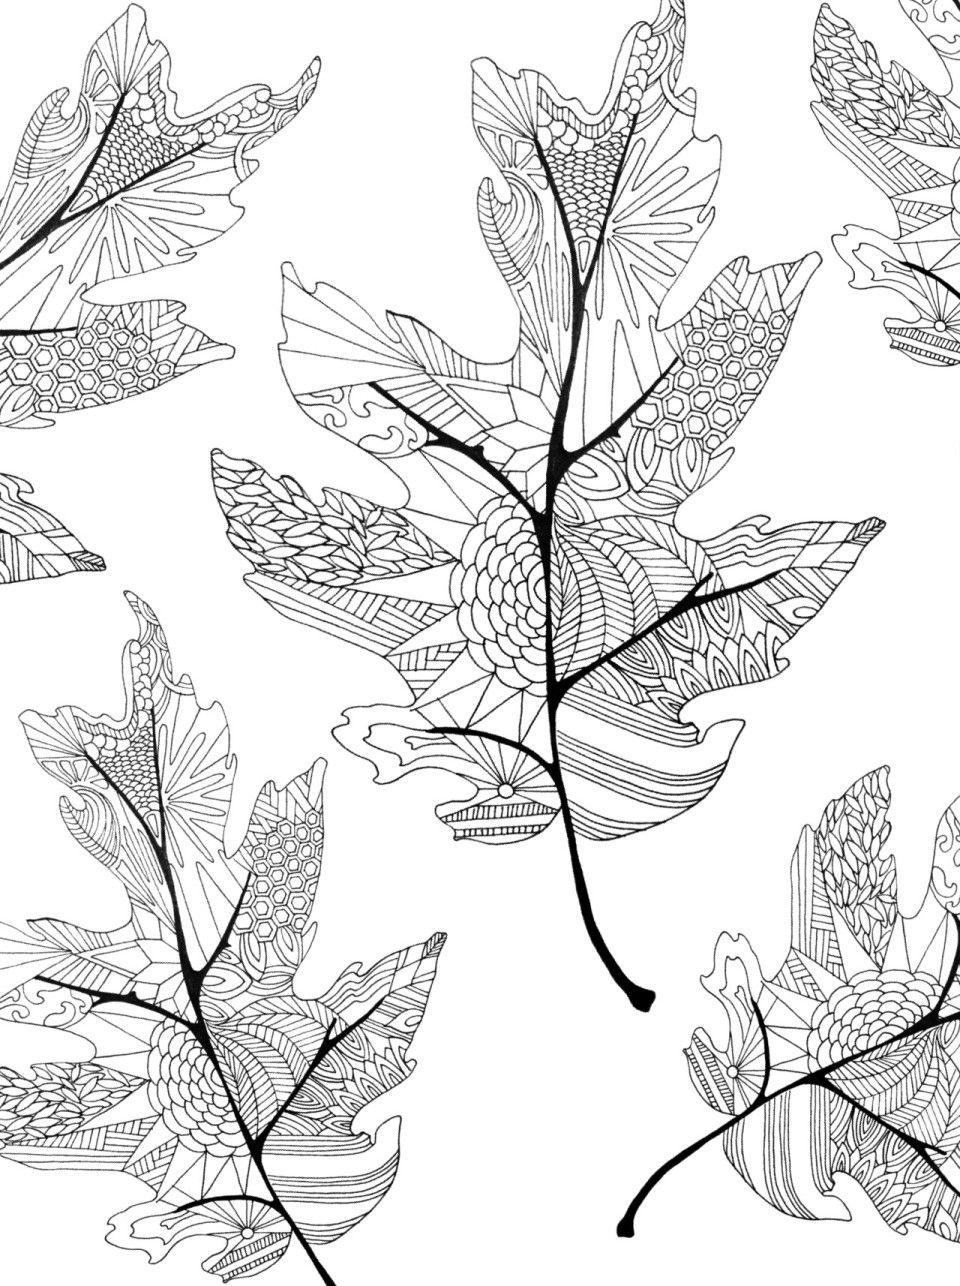 Coloring in the lines | Just for Fun | Pinterest | Fall leaves ...